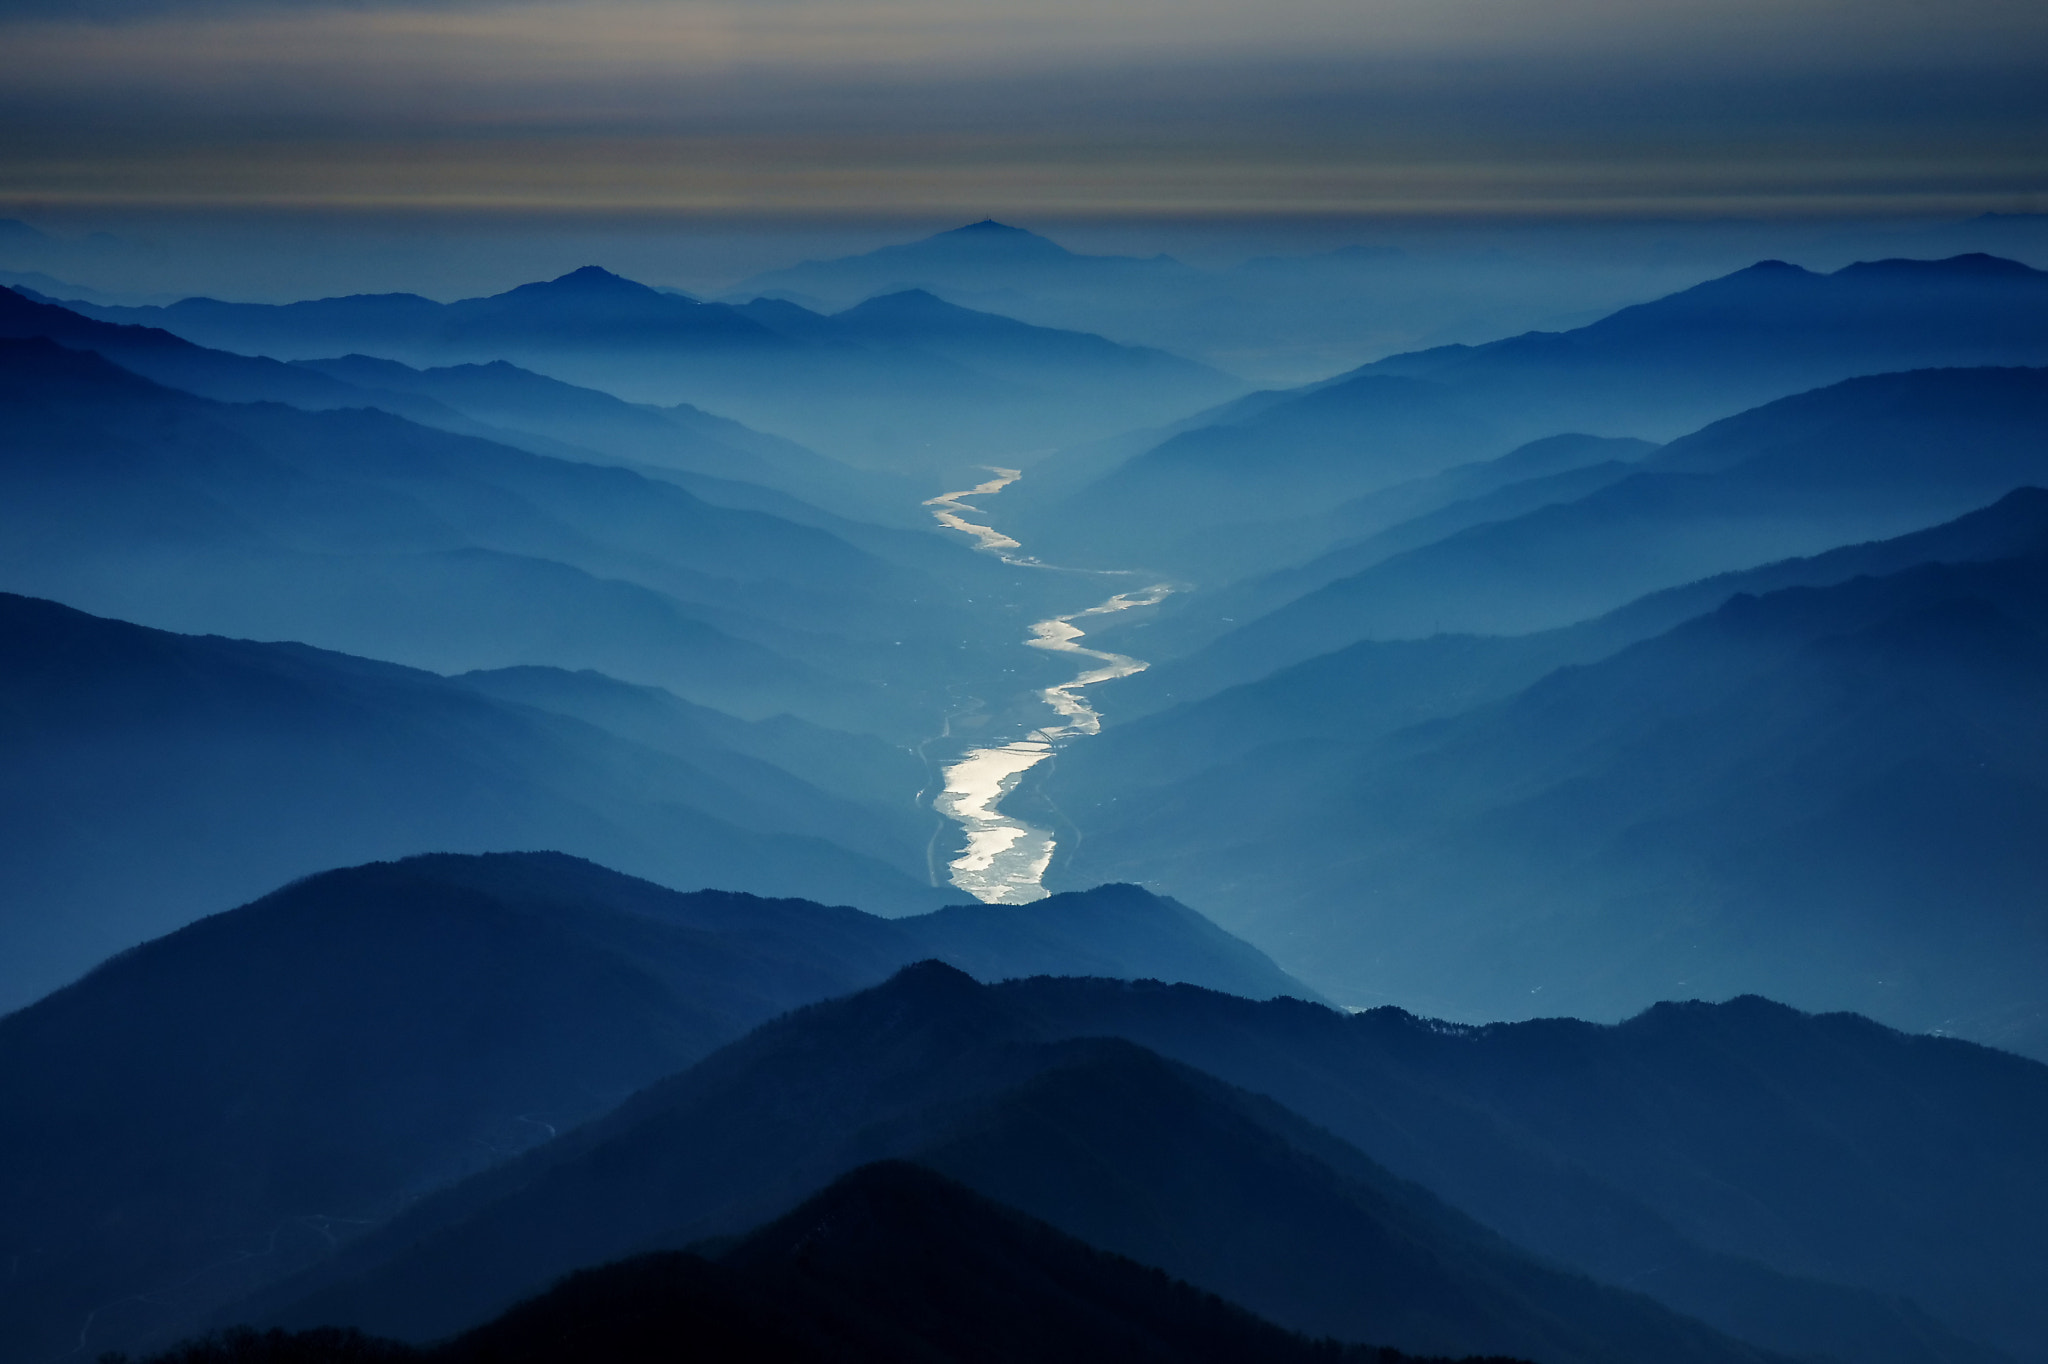 Photograph The King's River by MiSeon Eoh on 500px